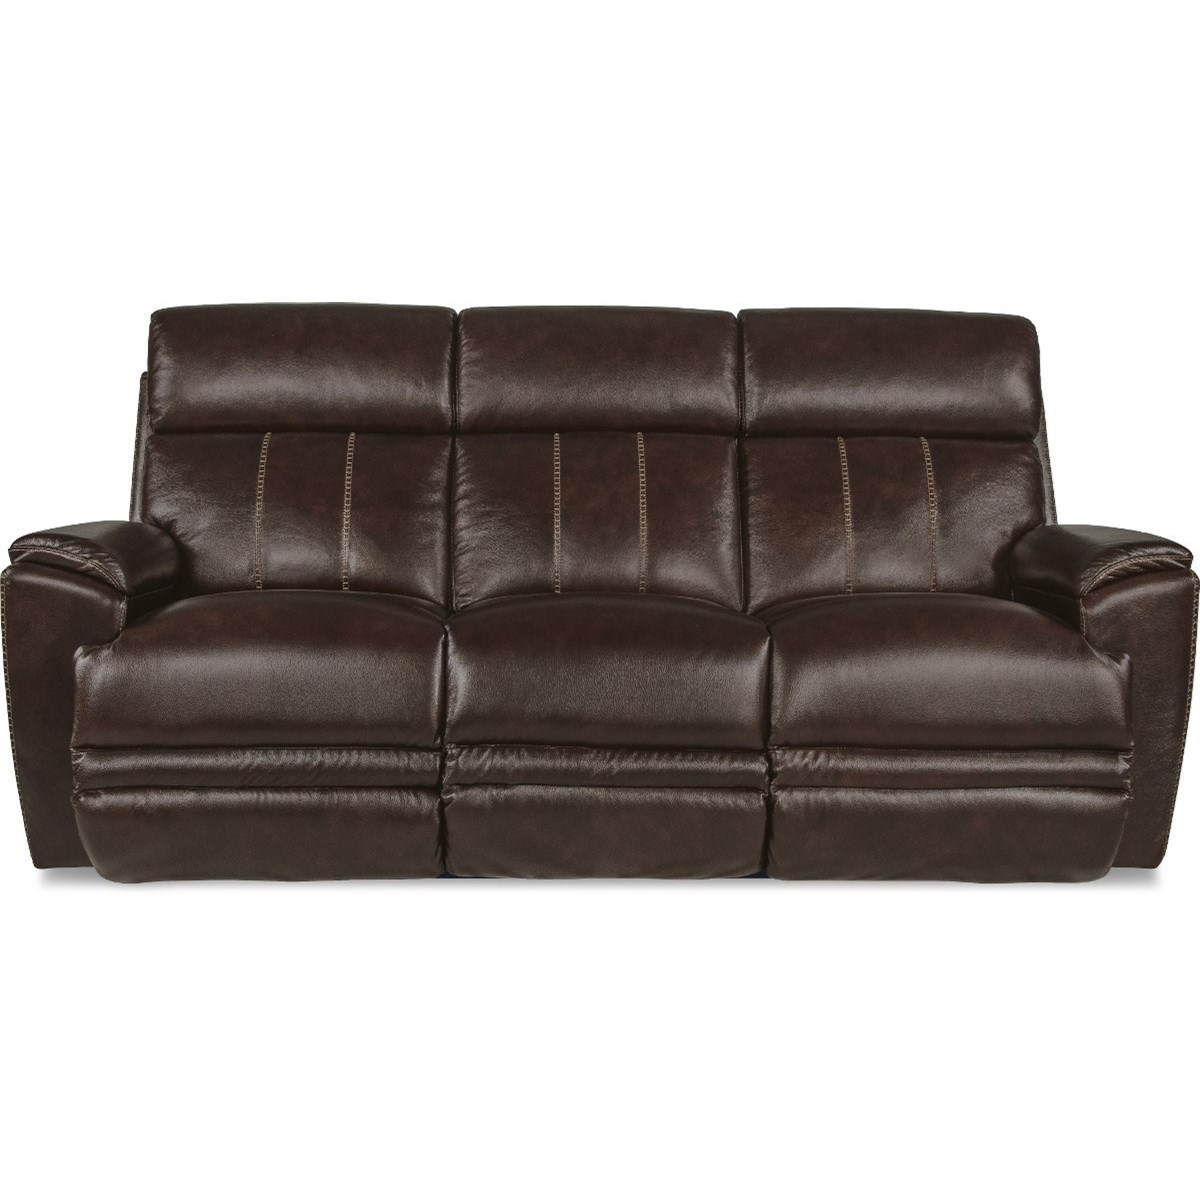 Leather Sofa La Z Boy Talladega Casual Reclining Sofa By La Z Boy At Conlin S Furniture